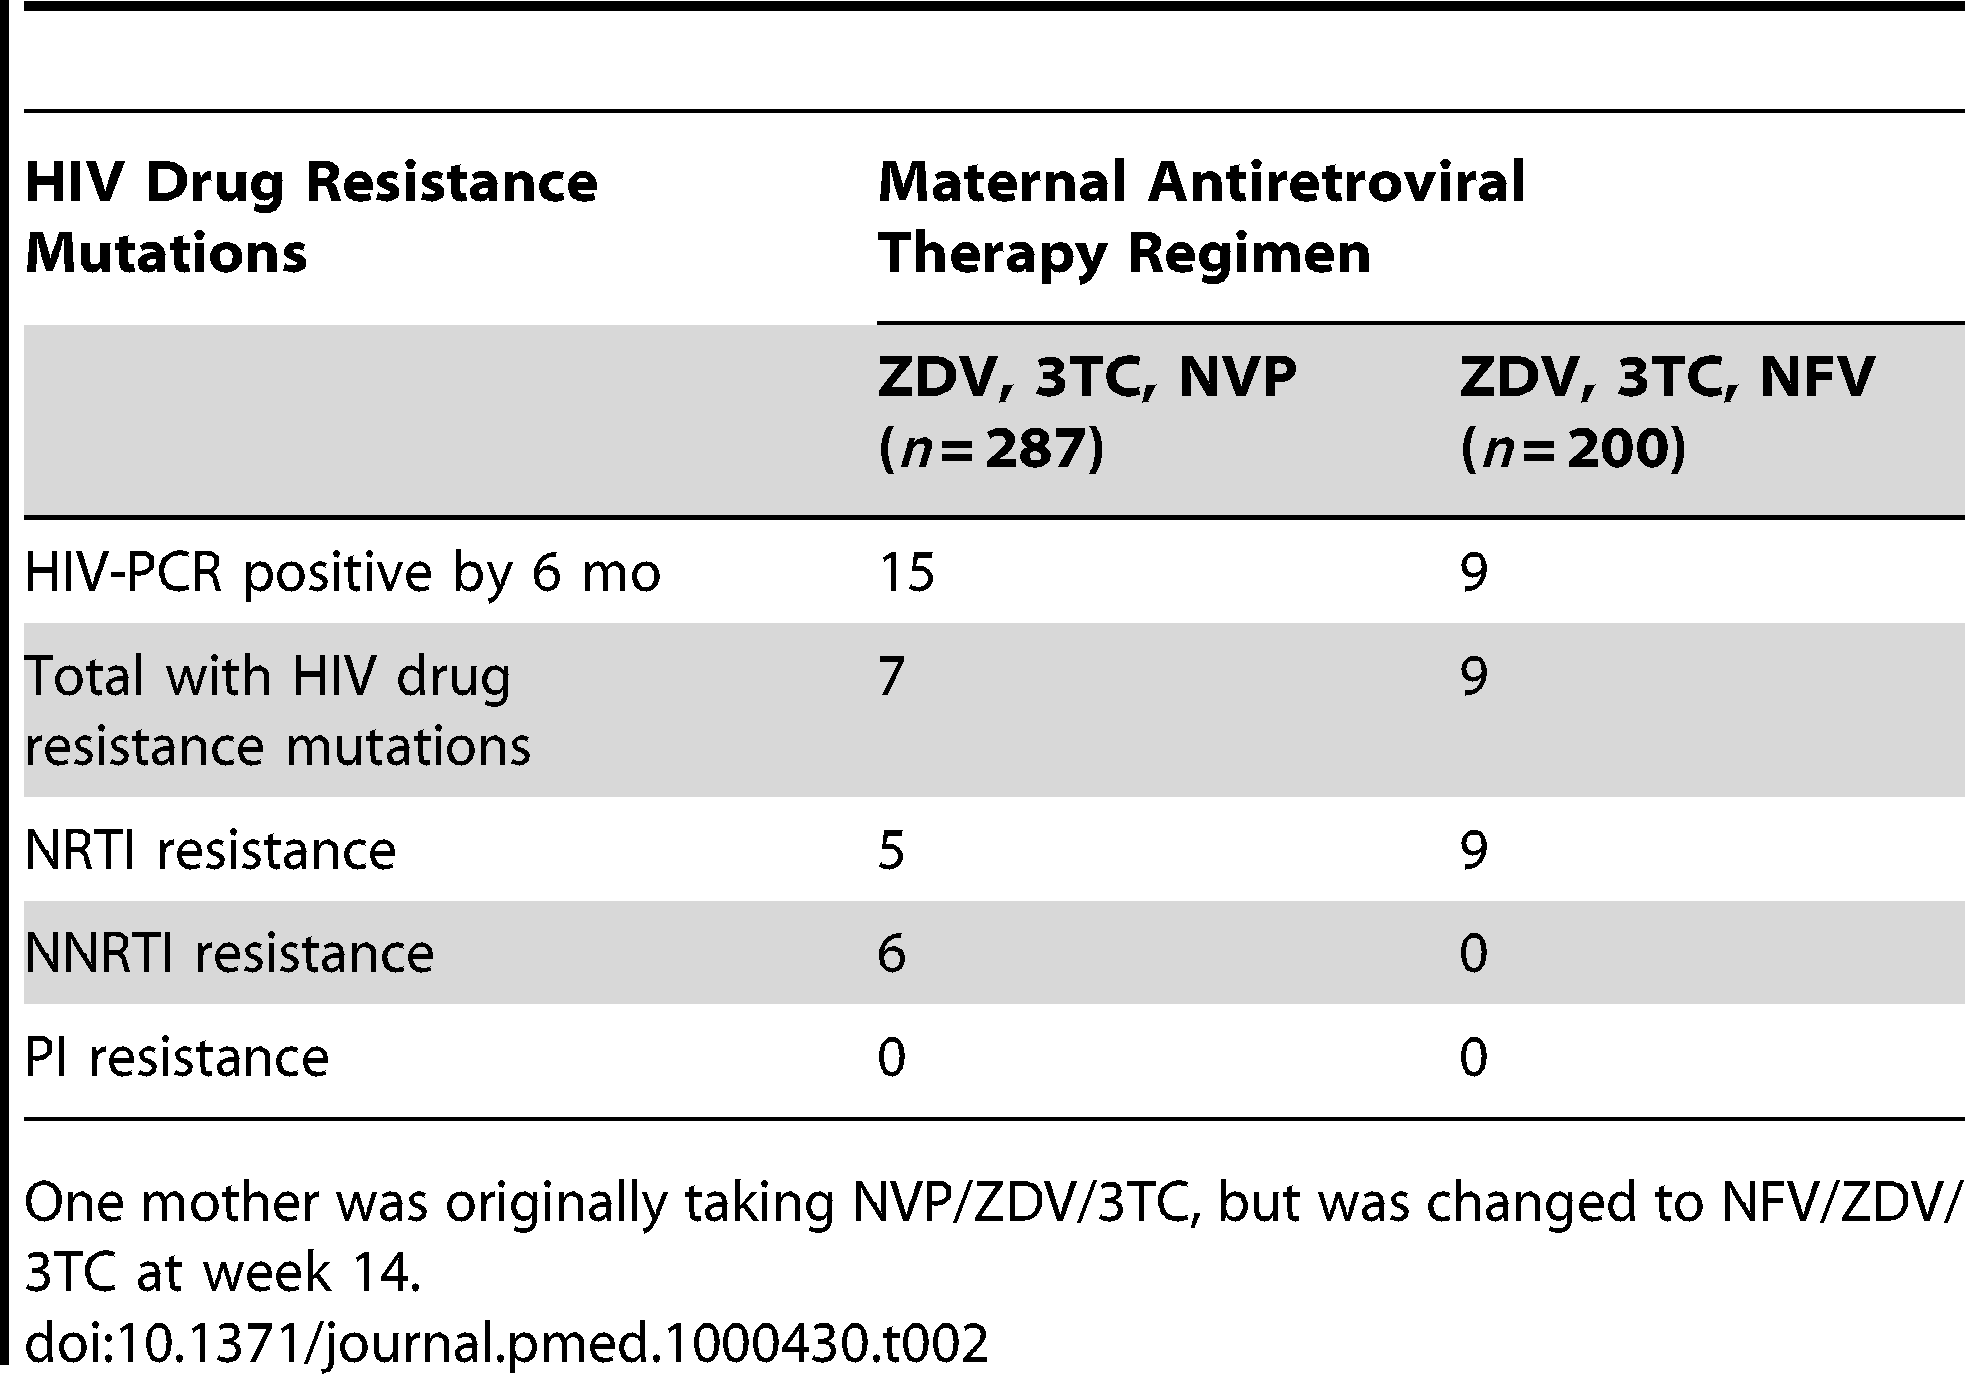 HIV drug resistance mutations among breastfeeding infants at 6 mo post partum according to maternal regimen.